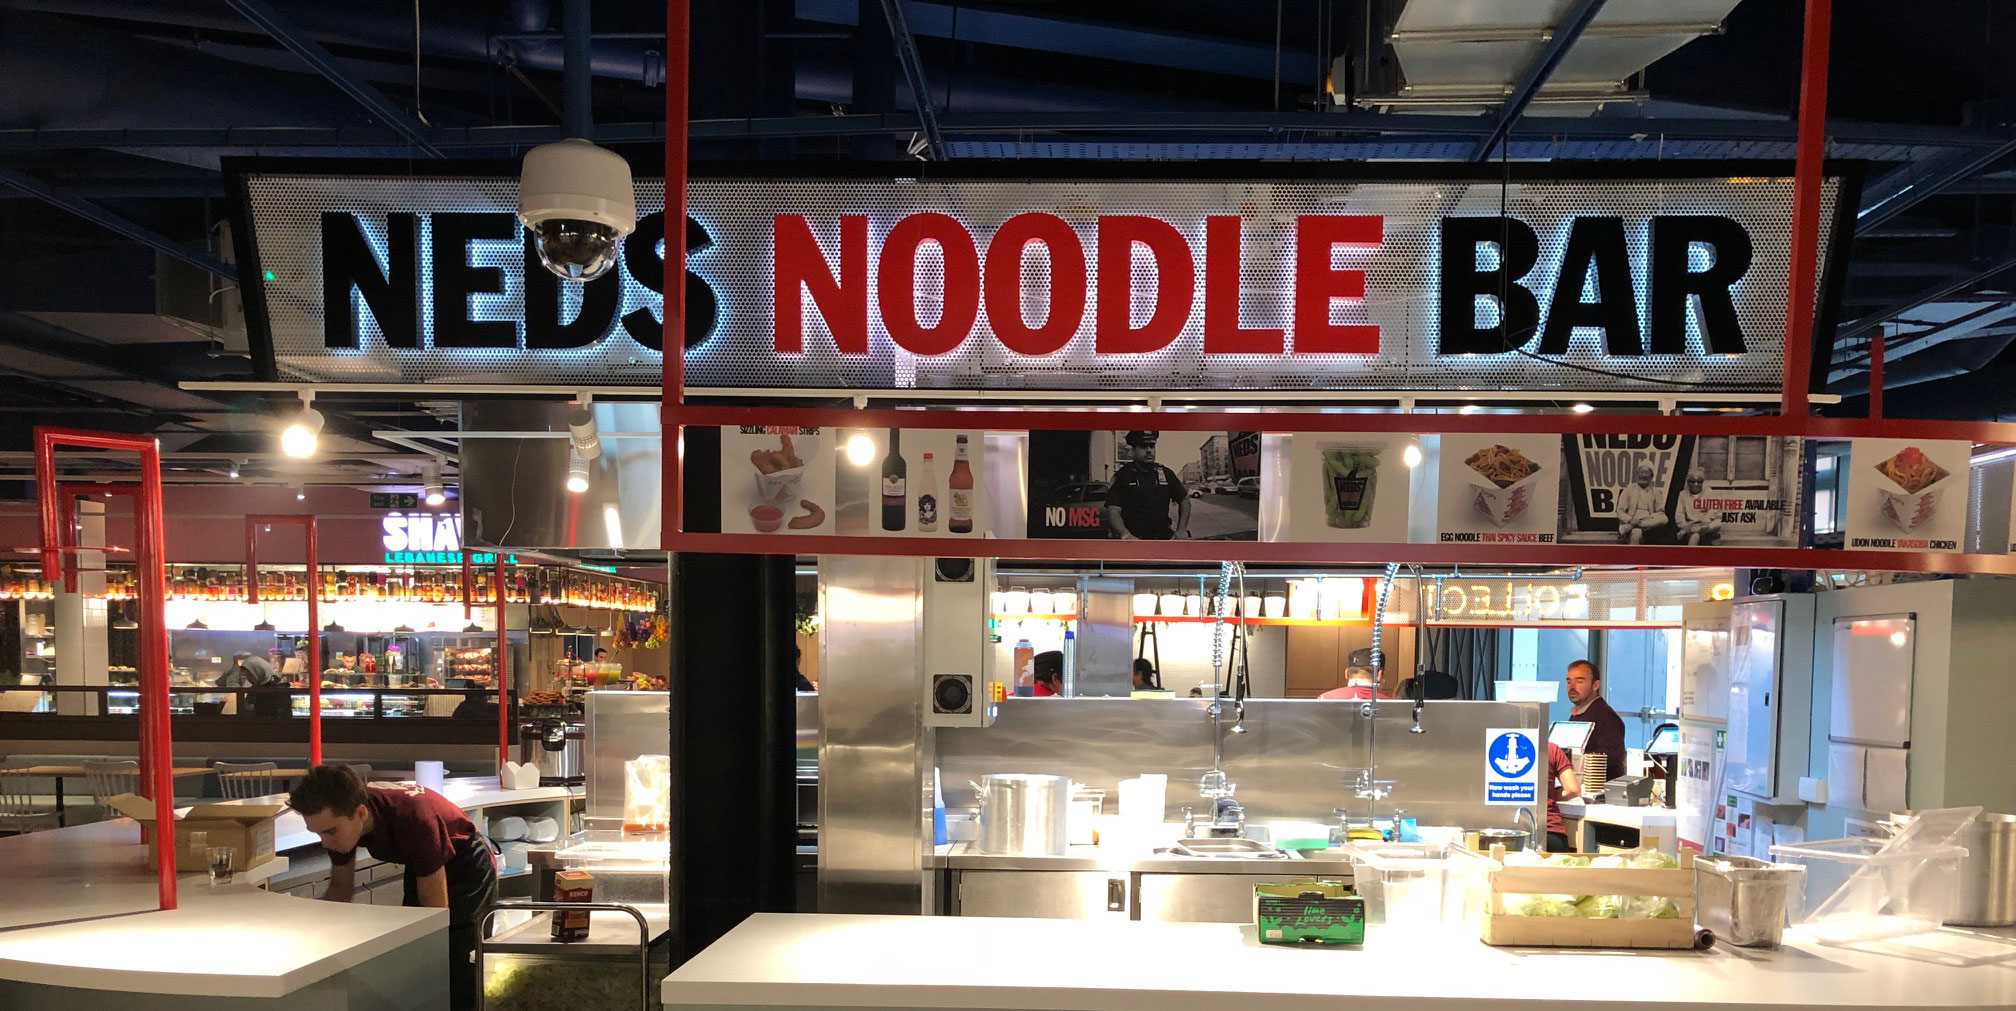 Neds Noodle Bar - Oxford's Westgate